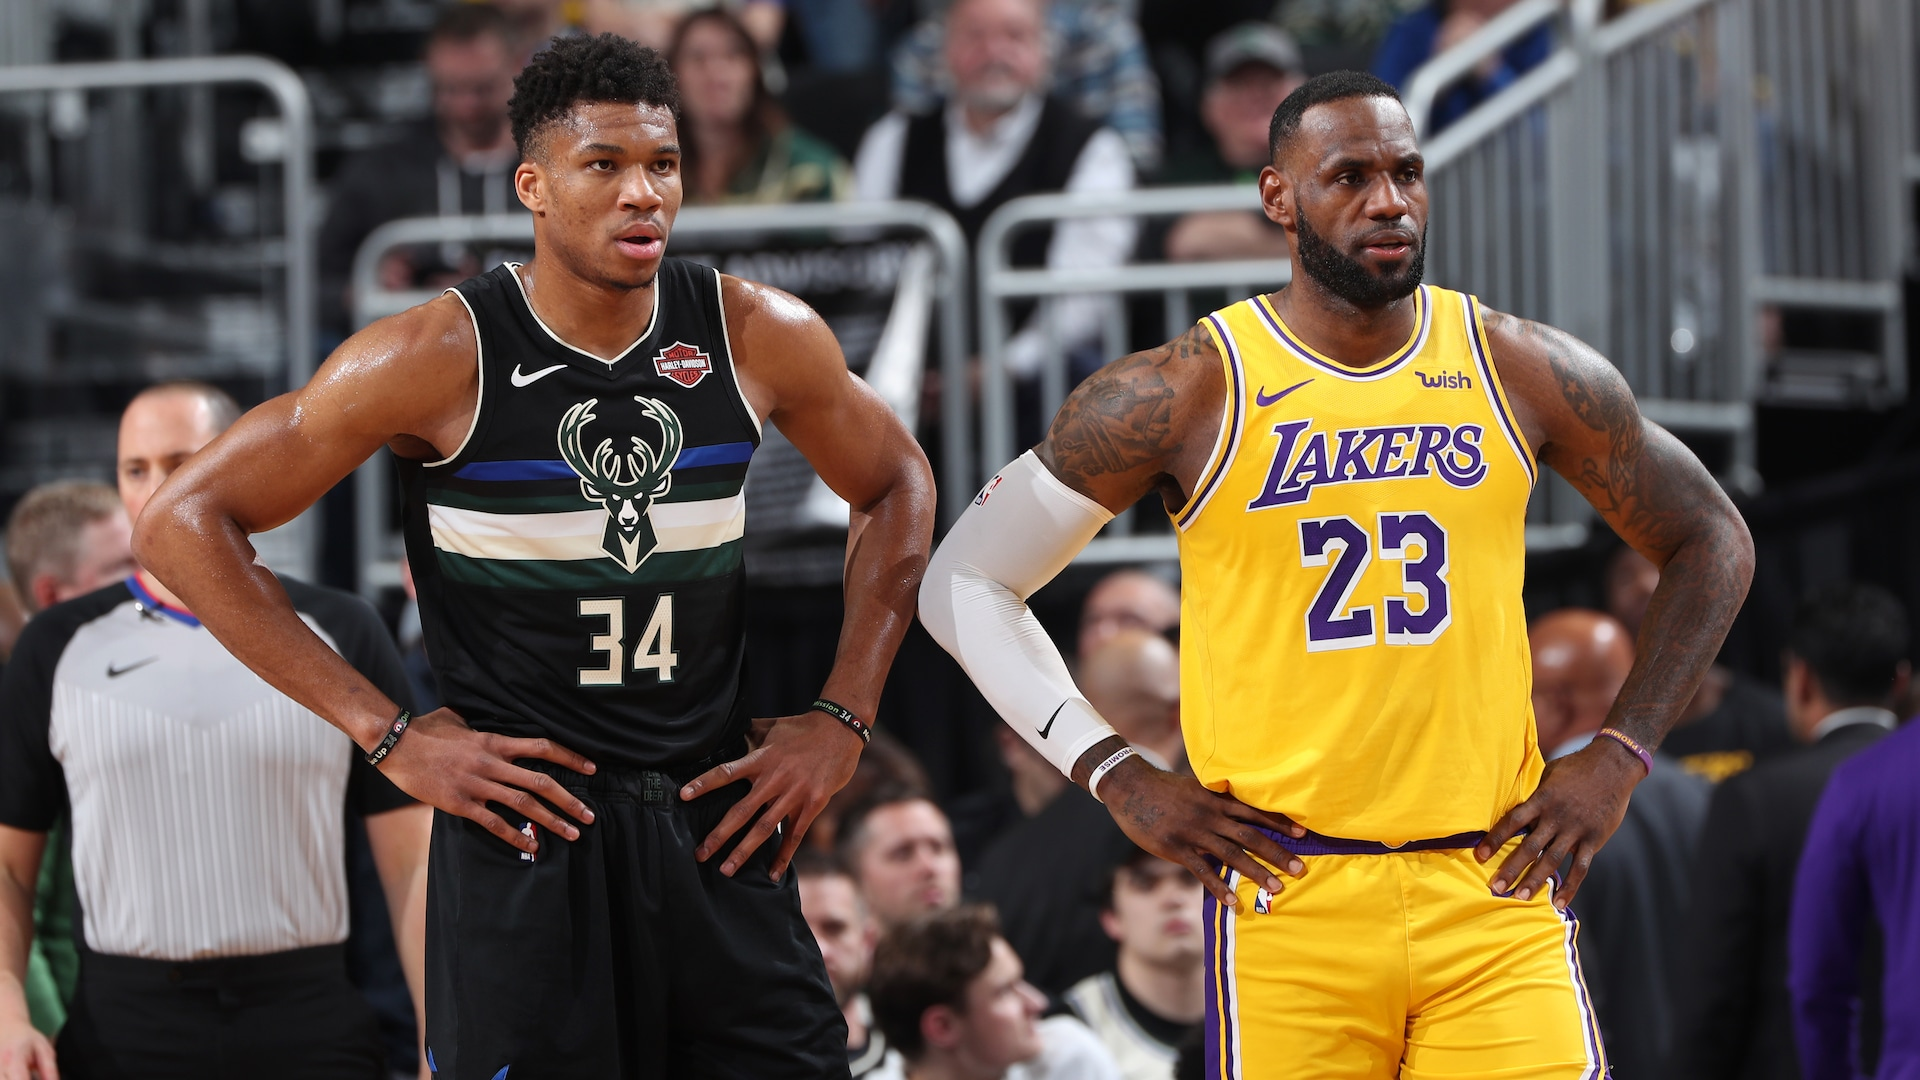 Power Rankings, Week 18: Lakers return to No. 2 as regular season enters stretch run